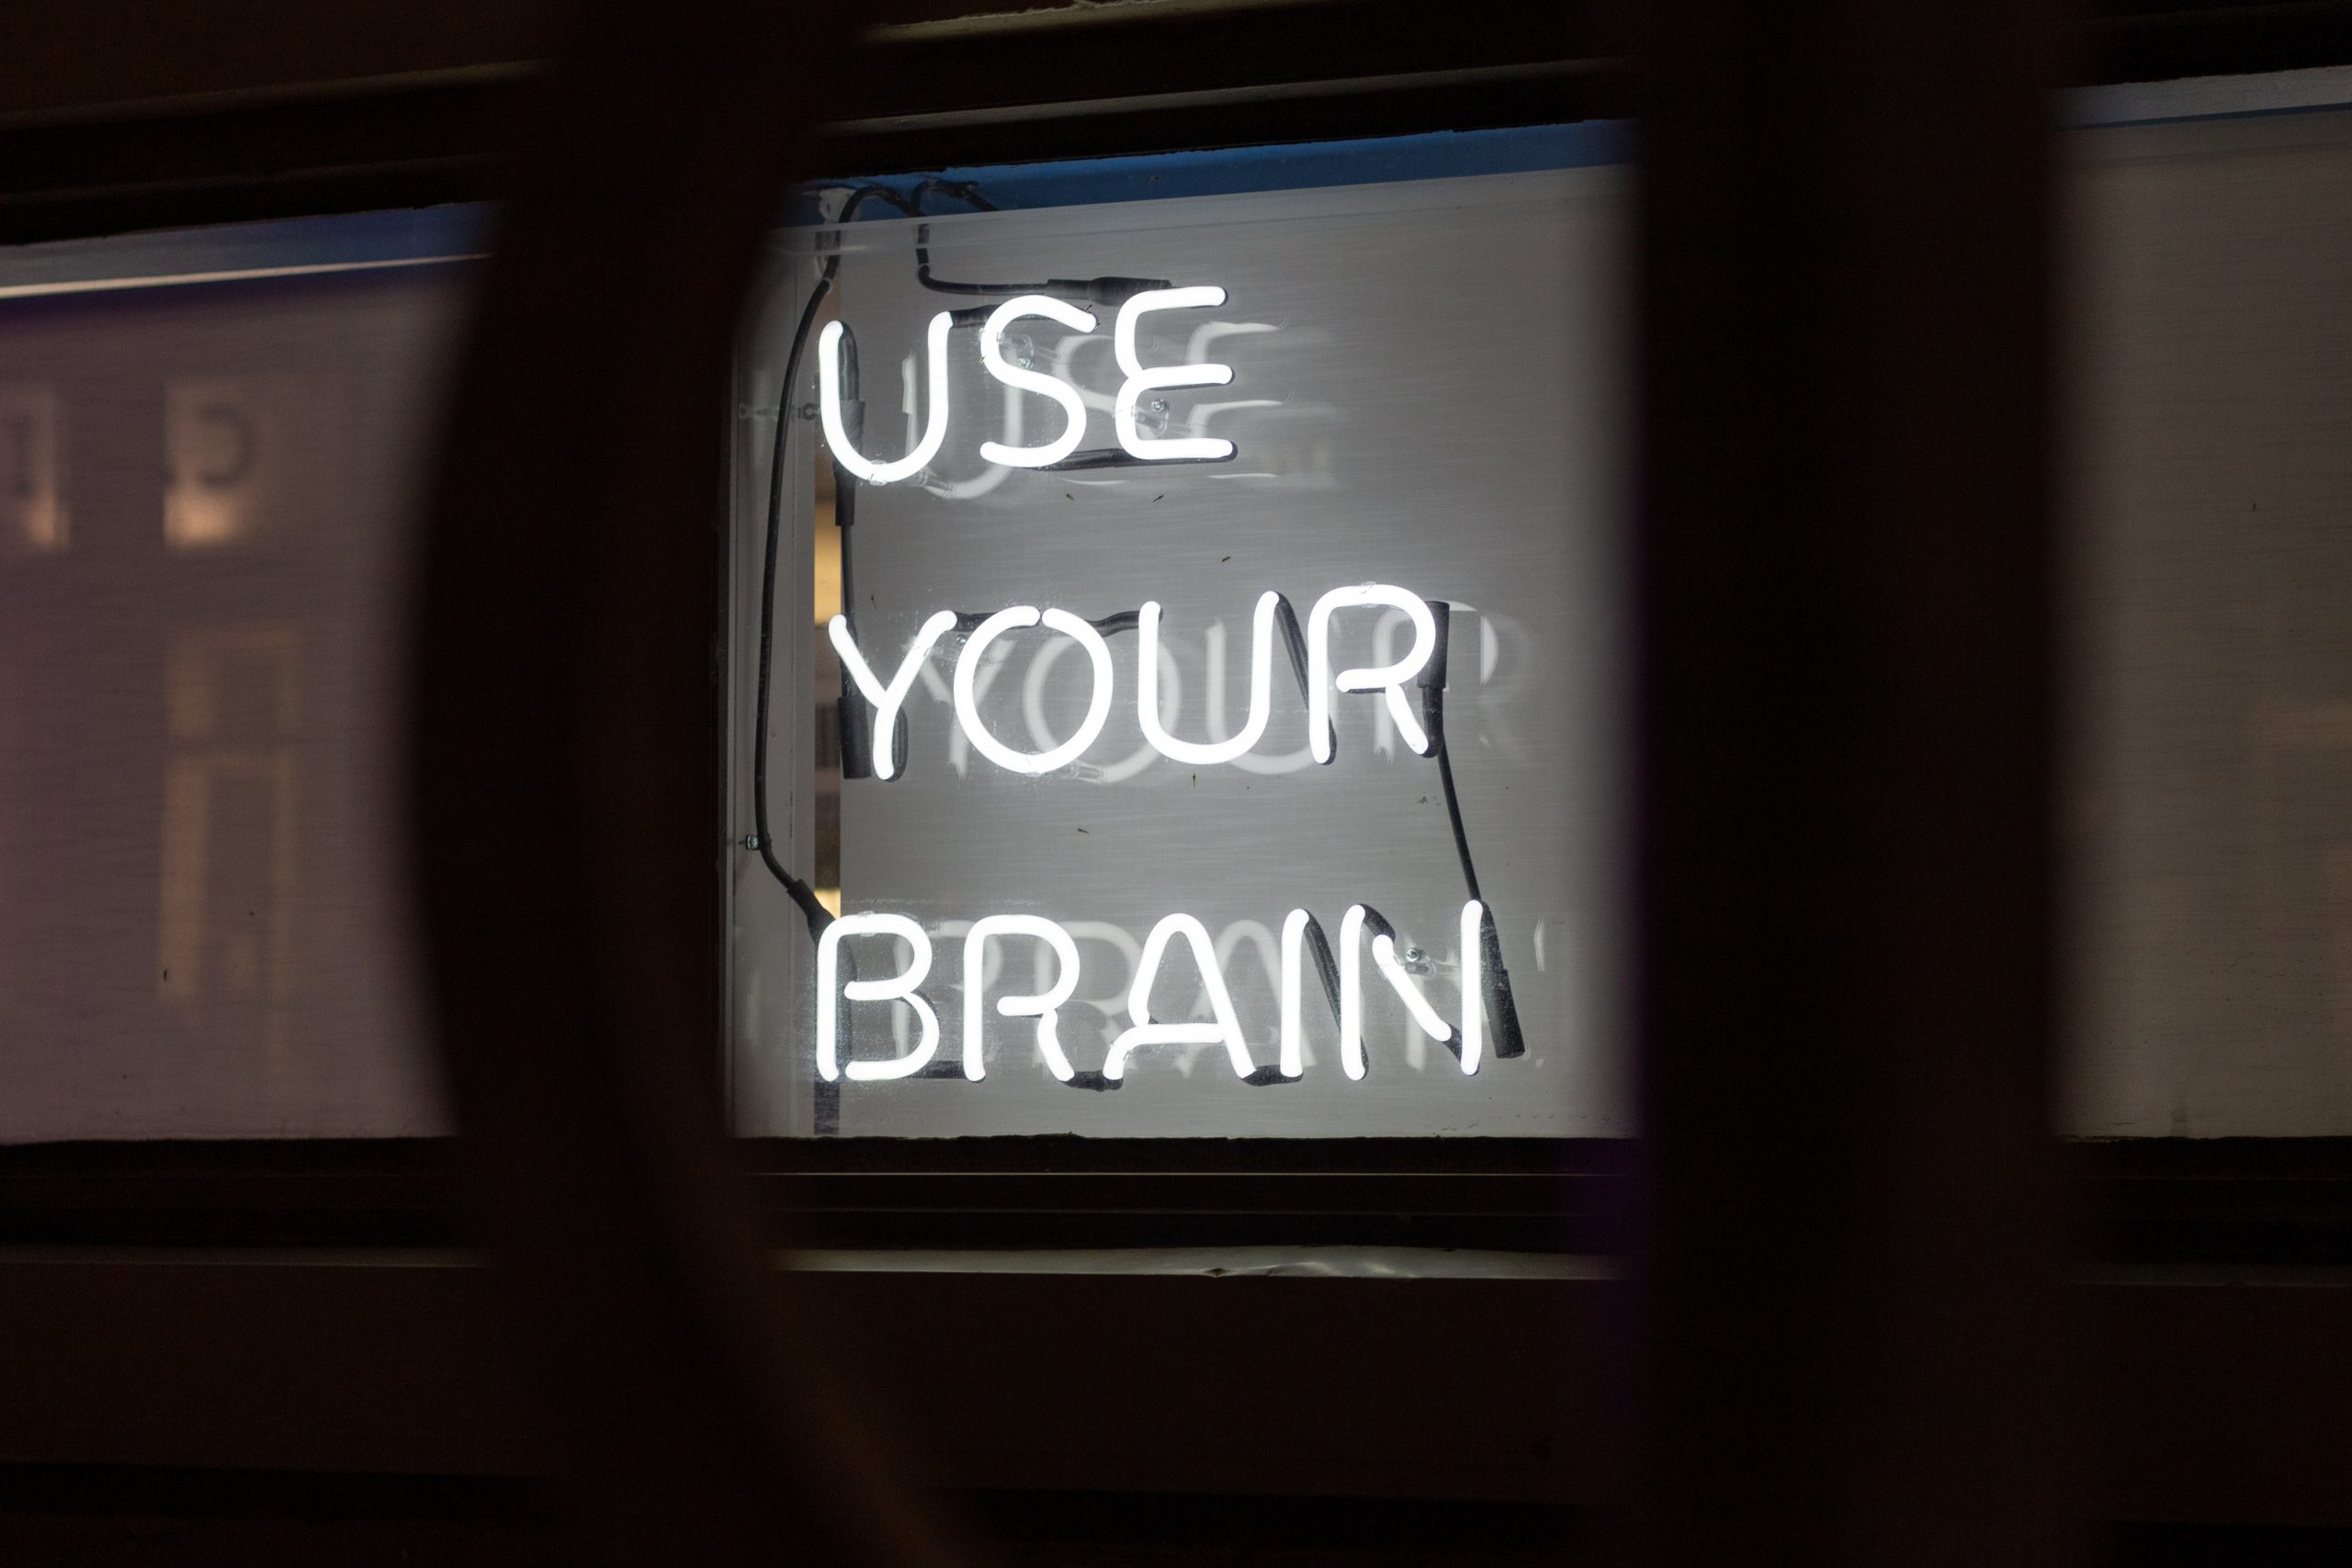 neon Use Your Brain sign